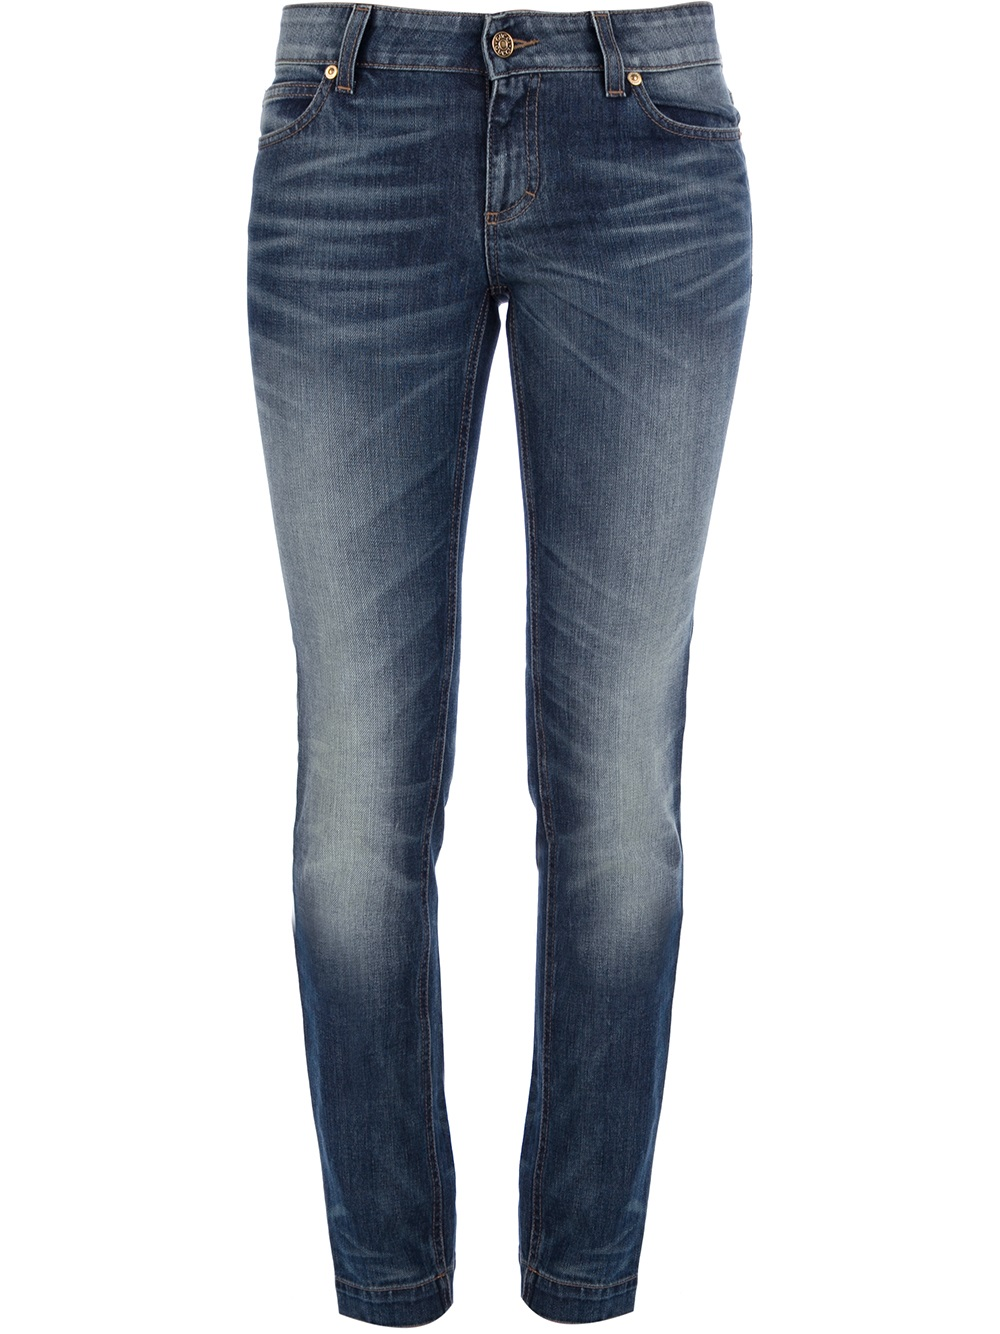 lyst gucci cropped stone washed jeans in blue. Black Bedroom Furniture Sets. Home Design Ideas